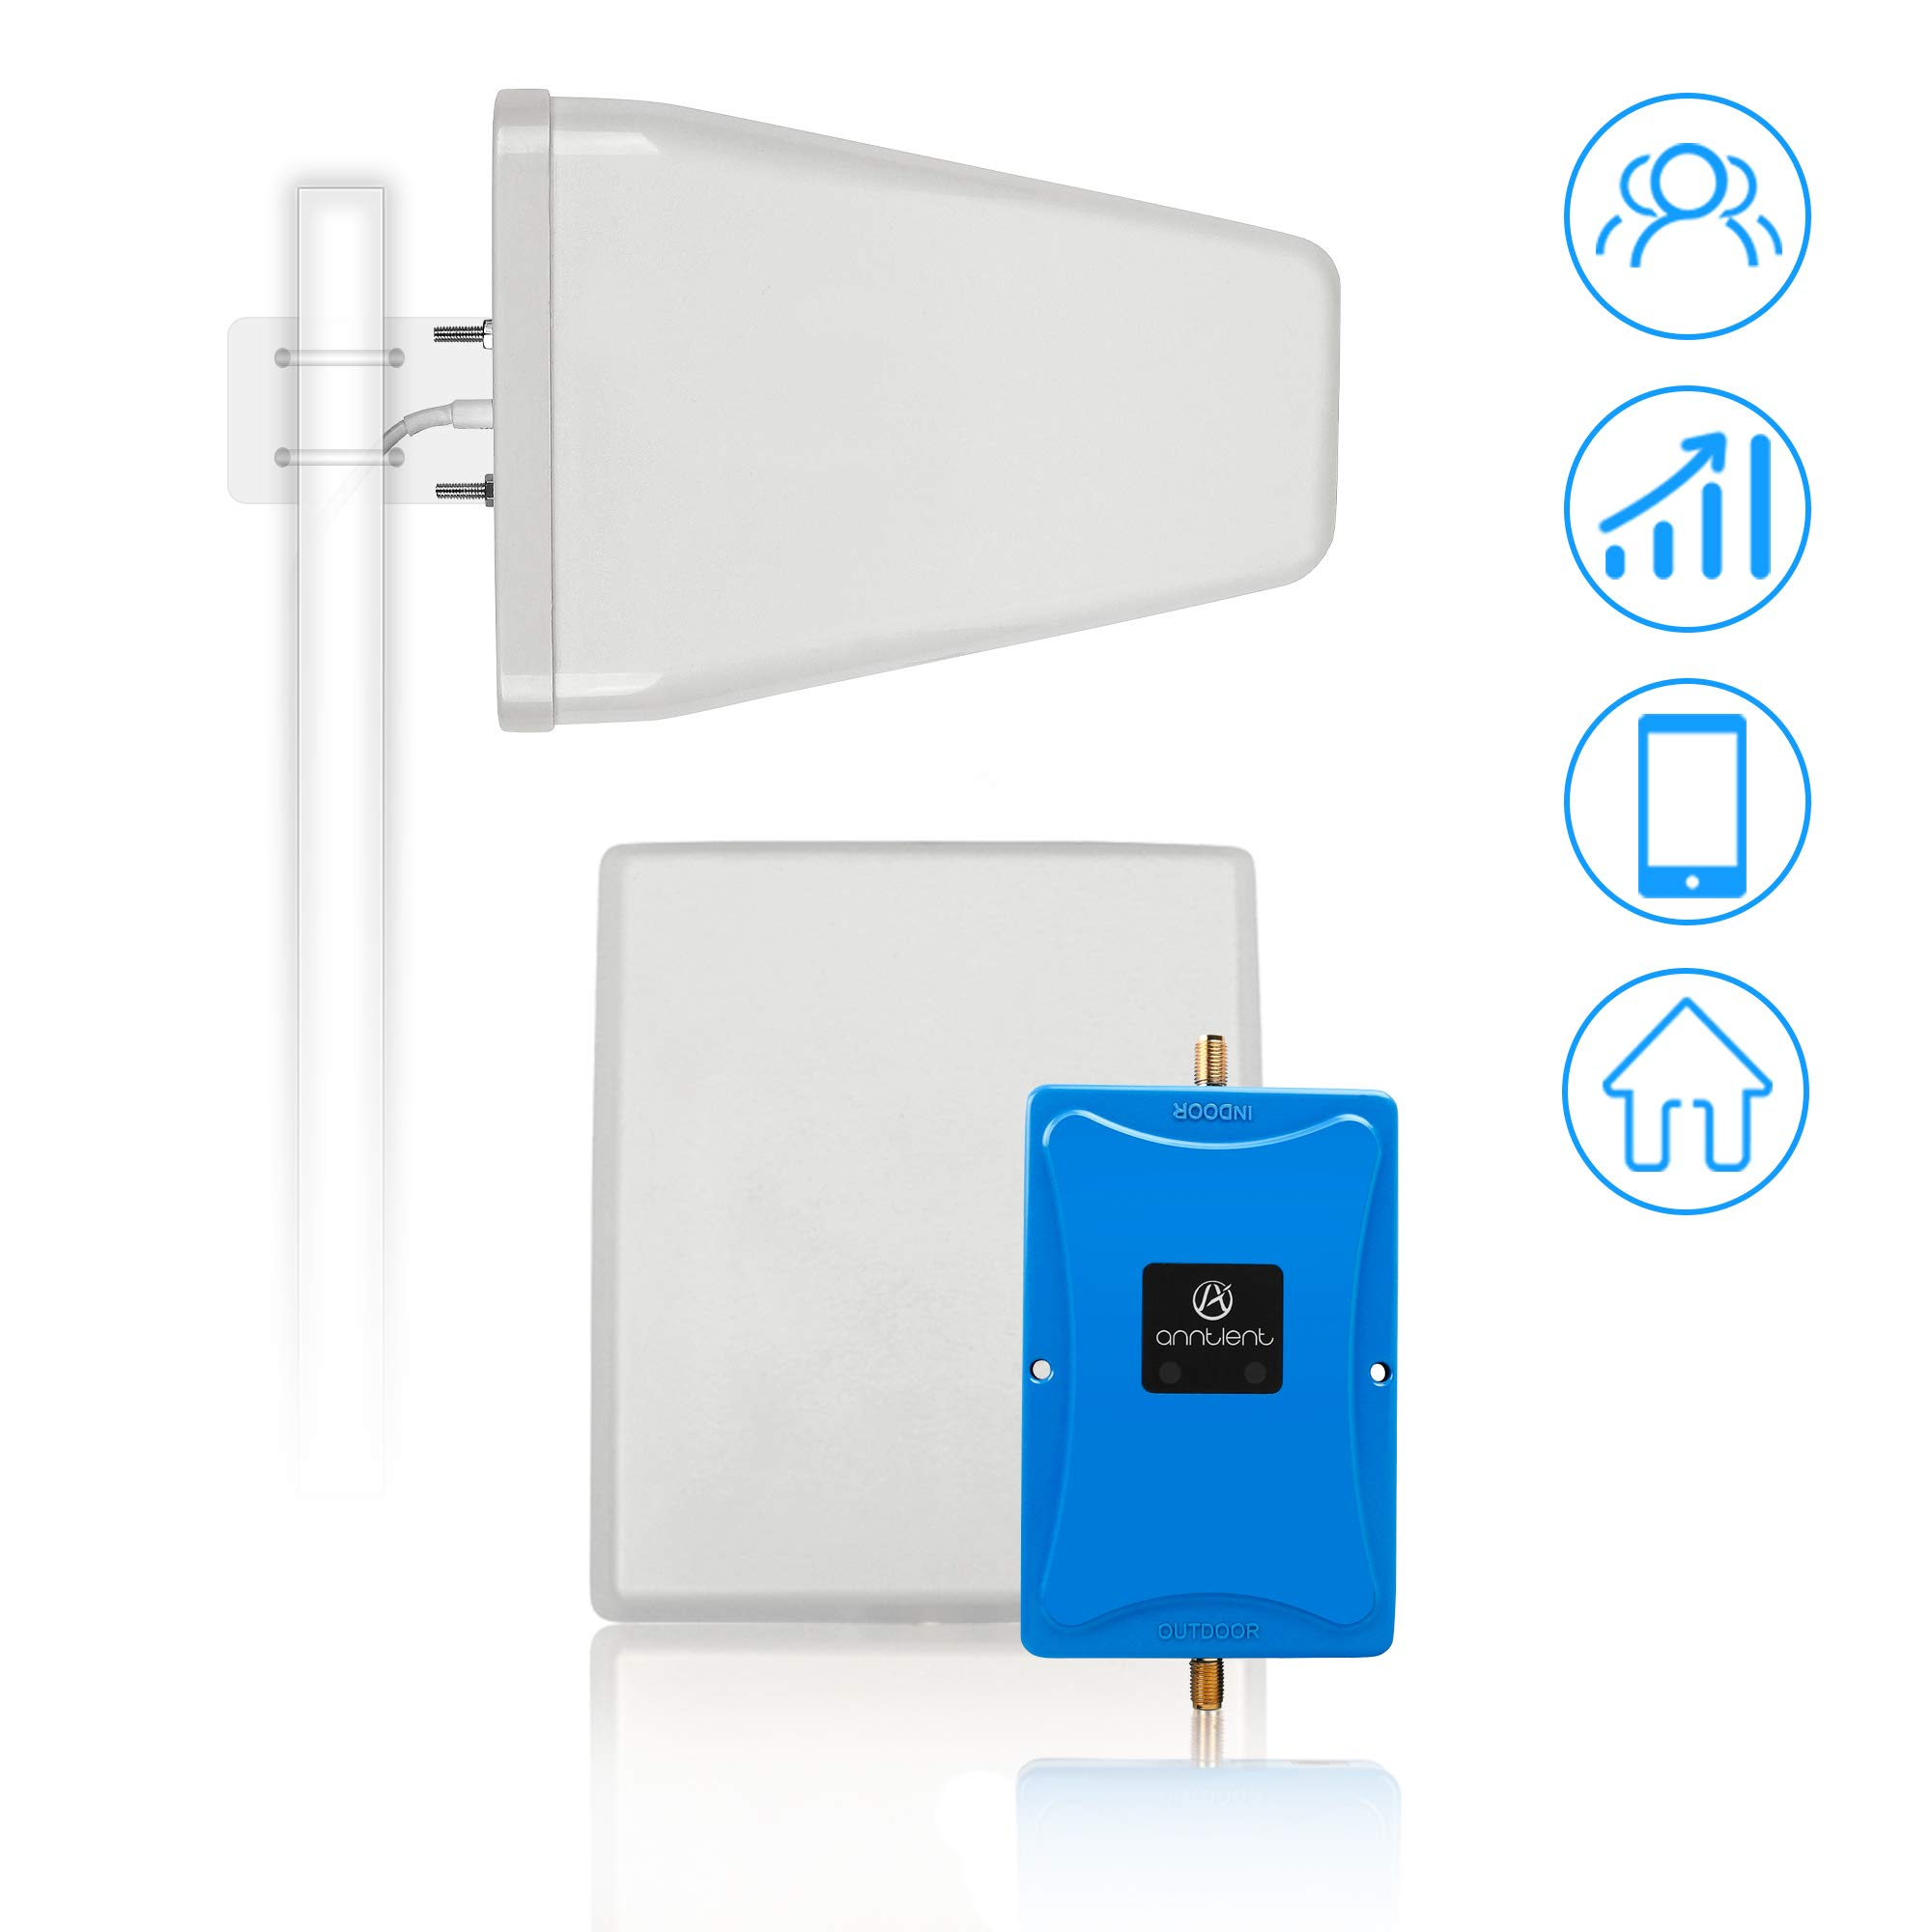 Cell Phone Signal Booster for Verizon AT&T T-Mobile 4G LTE - Dual 700MHz Band 12/13/17 Cellular Repeater Amplifier Kit Boosts Voice & Data Signal for Home and Office Up to 4,000Sq Ft Area